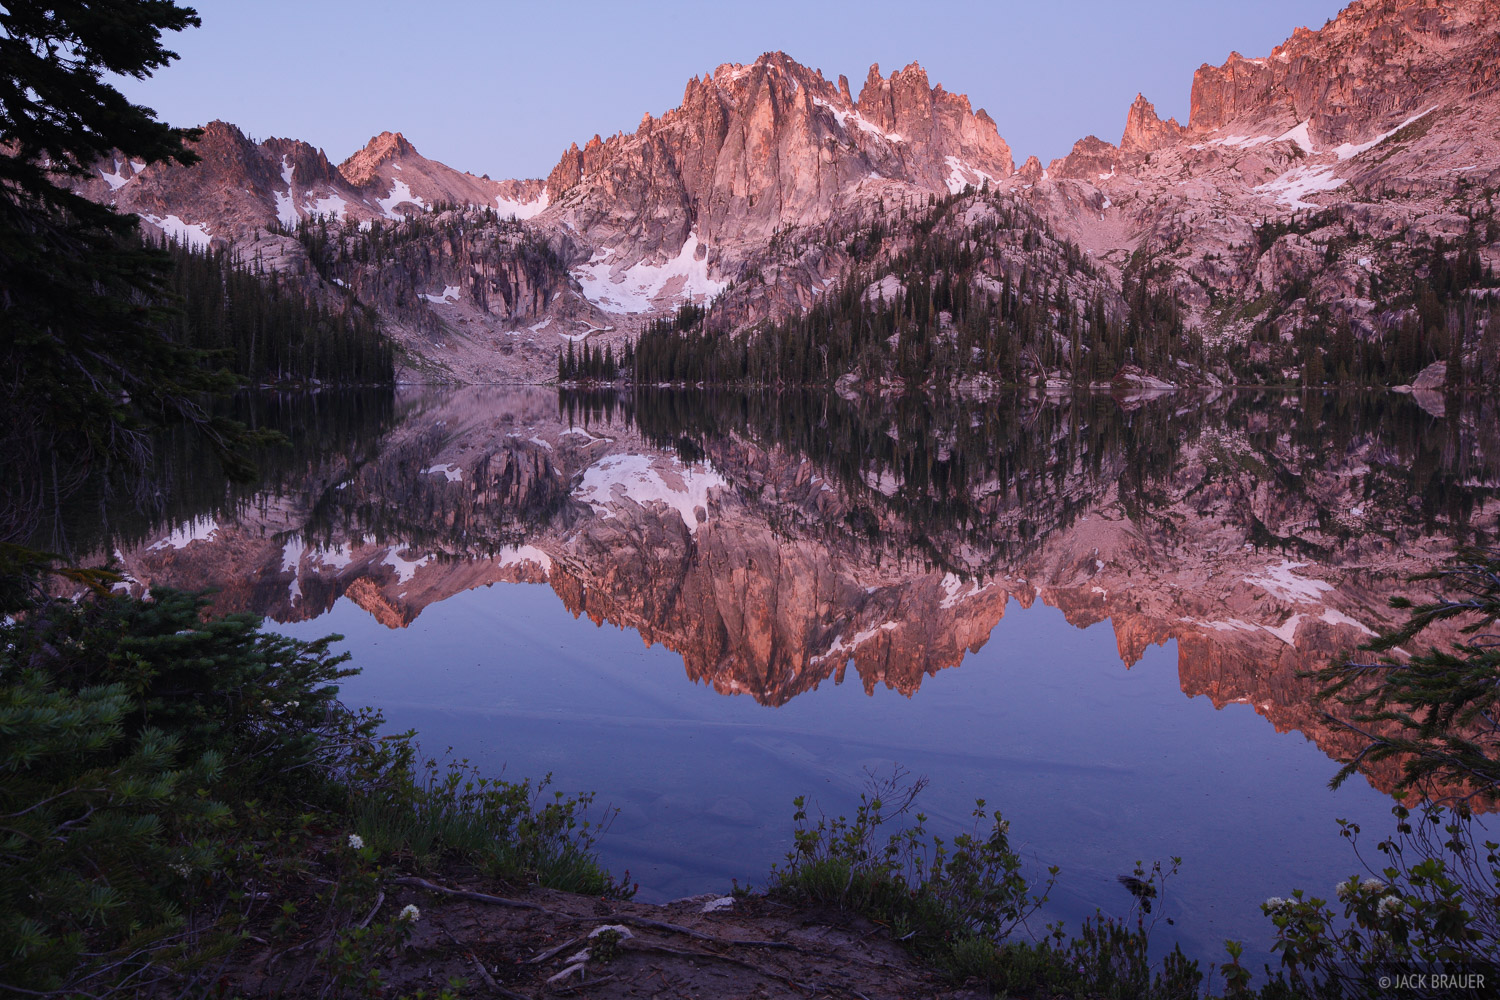 Monte Verita, Baron Lake, Sawtooth Mountains, Idaho, photo